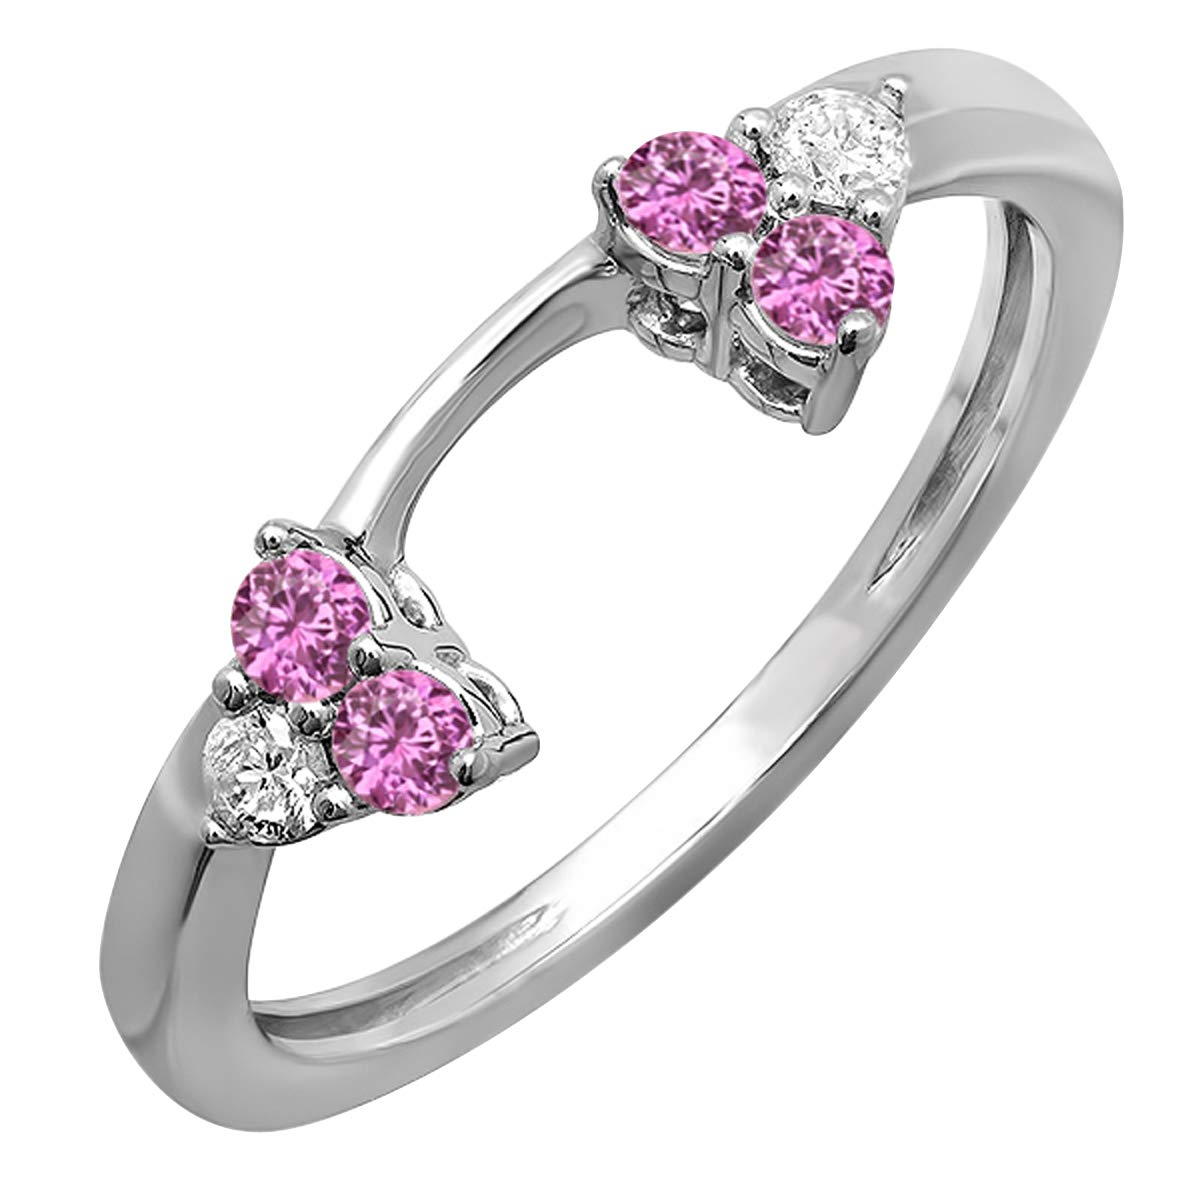 Dazzlingrock Collection 14K White Diamond And Pink Sapphire Ladies Wedding Ring Guard Band, White Gold, Size 7 by Dazzlingrock Collection